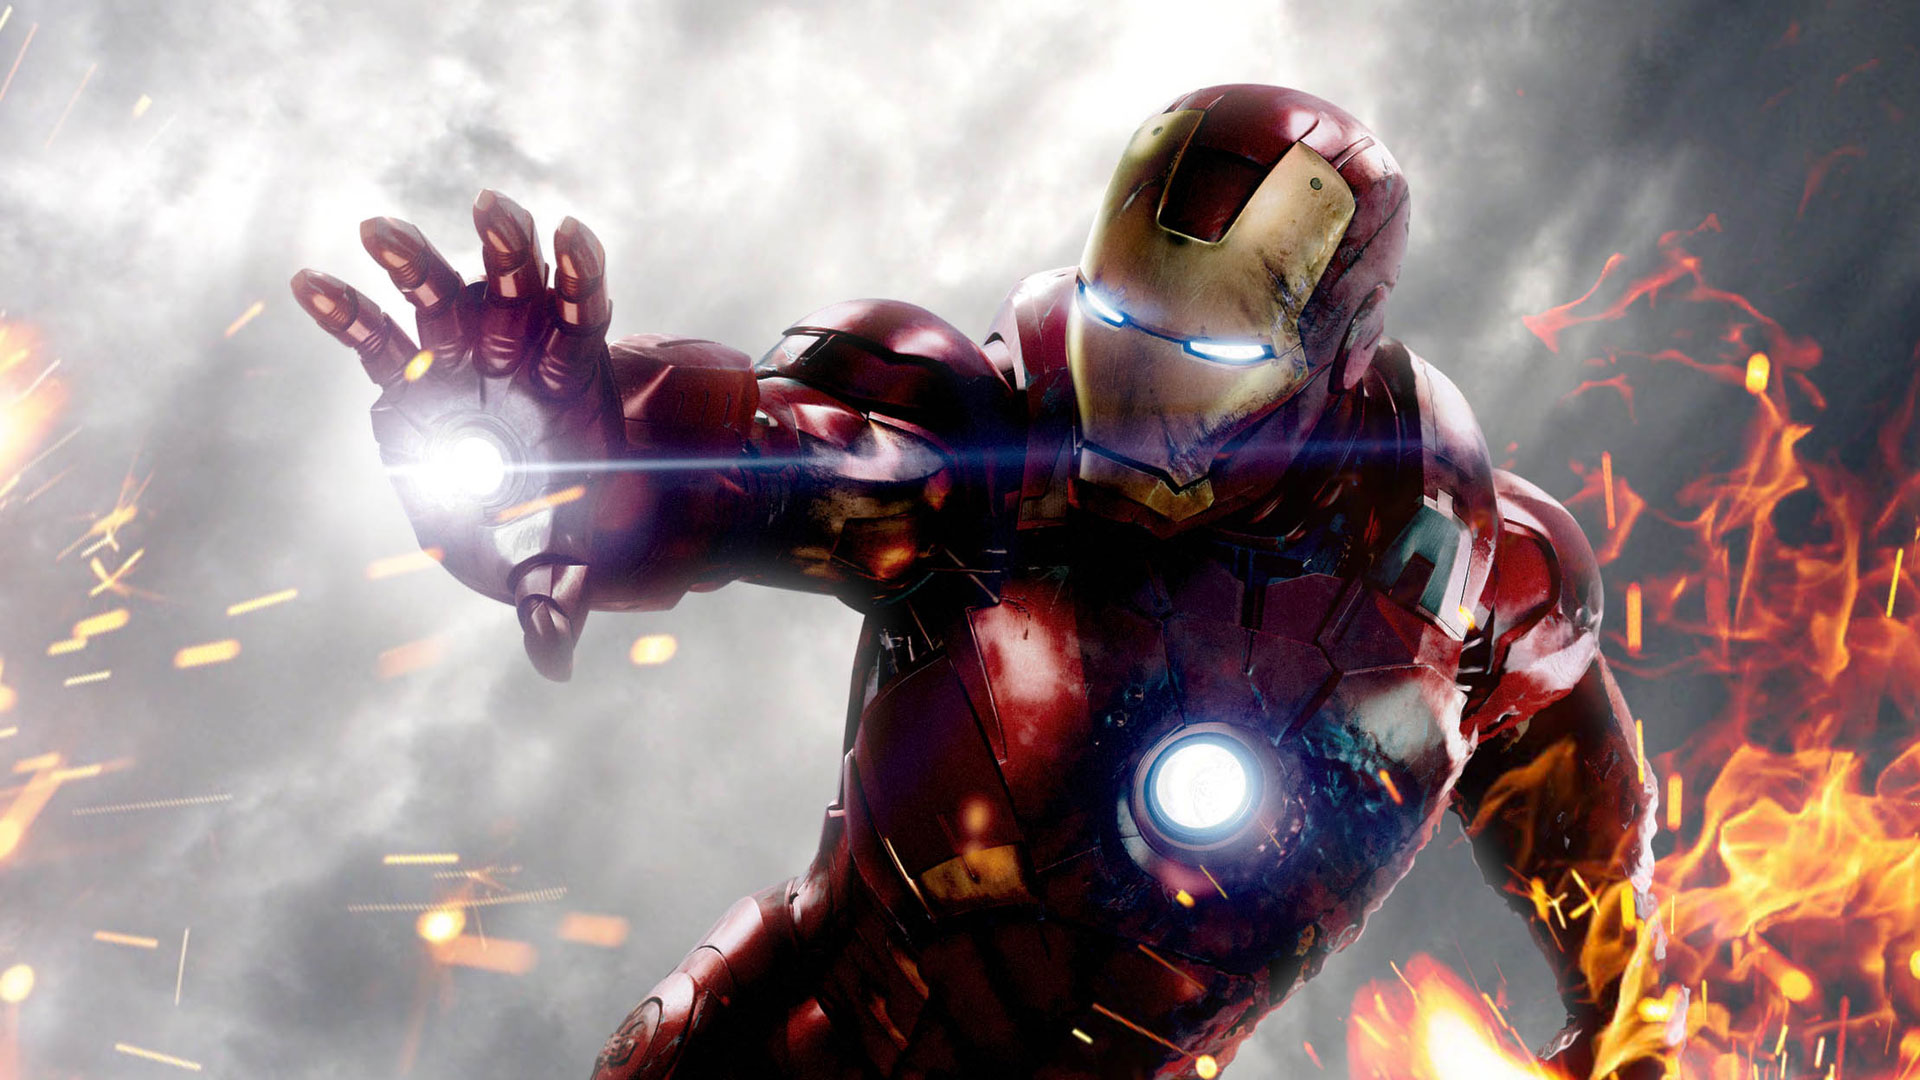 iron man wallpapers Desktop Backgrounds for HD Wallpaper wall 1920x1080